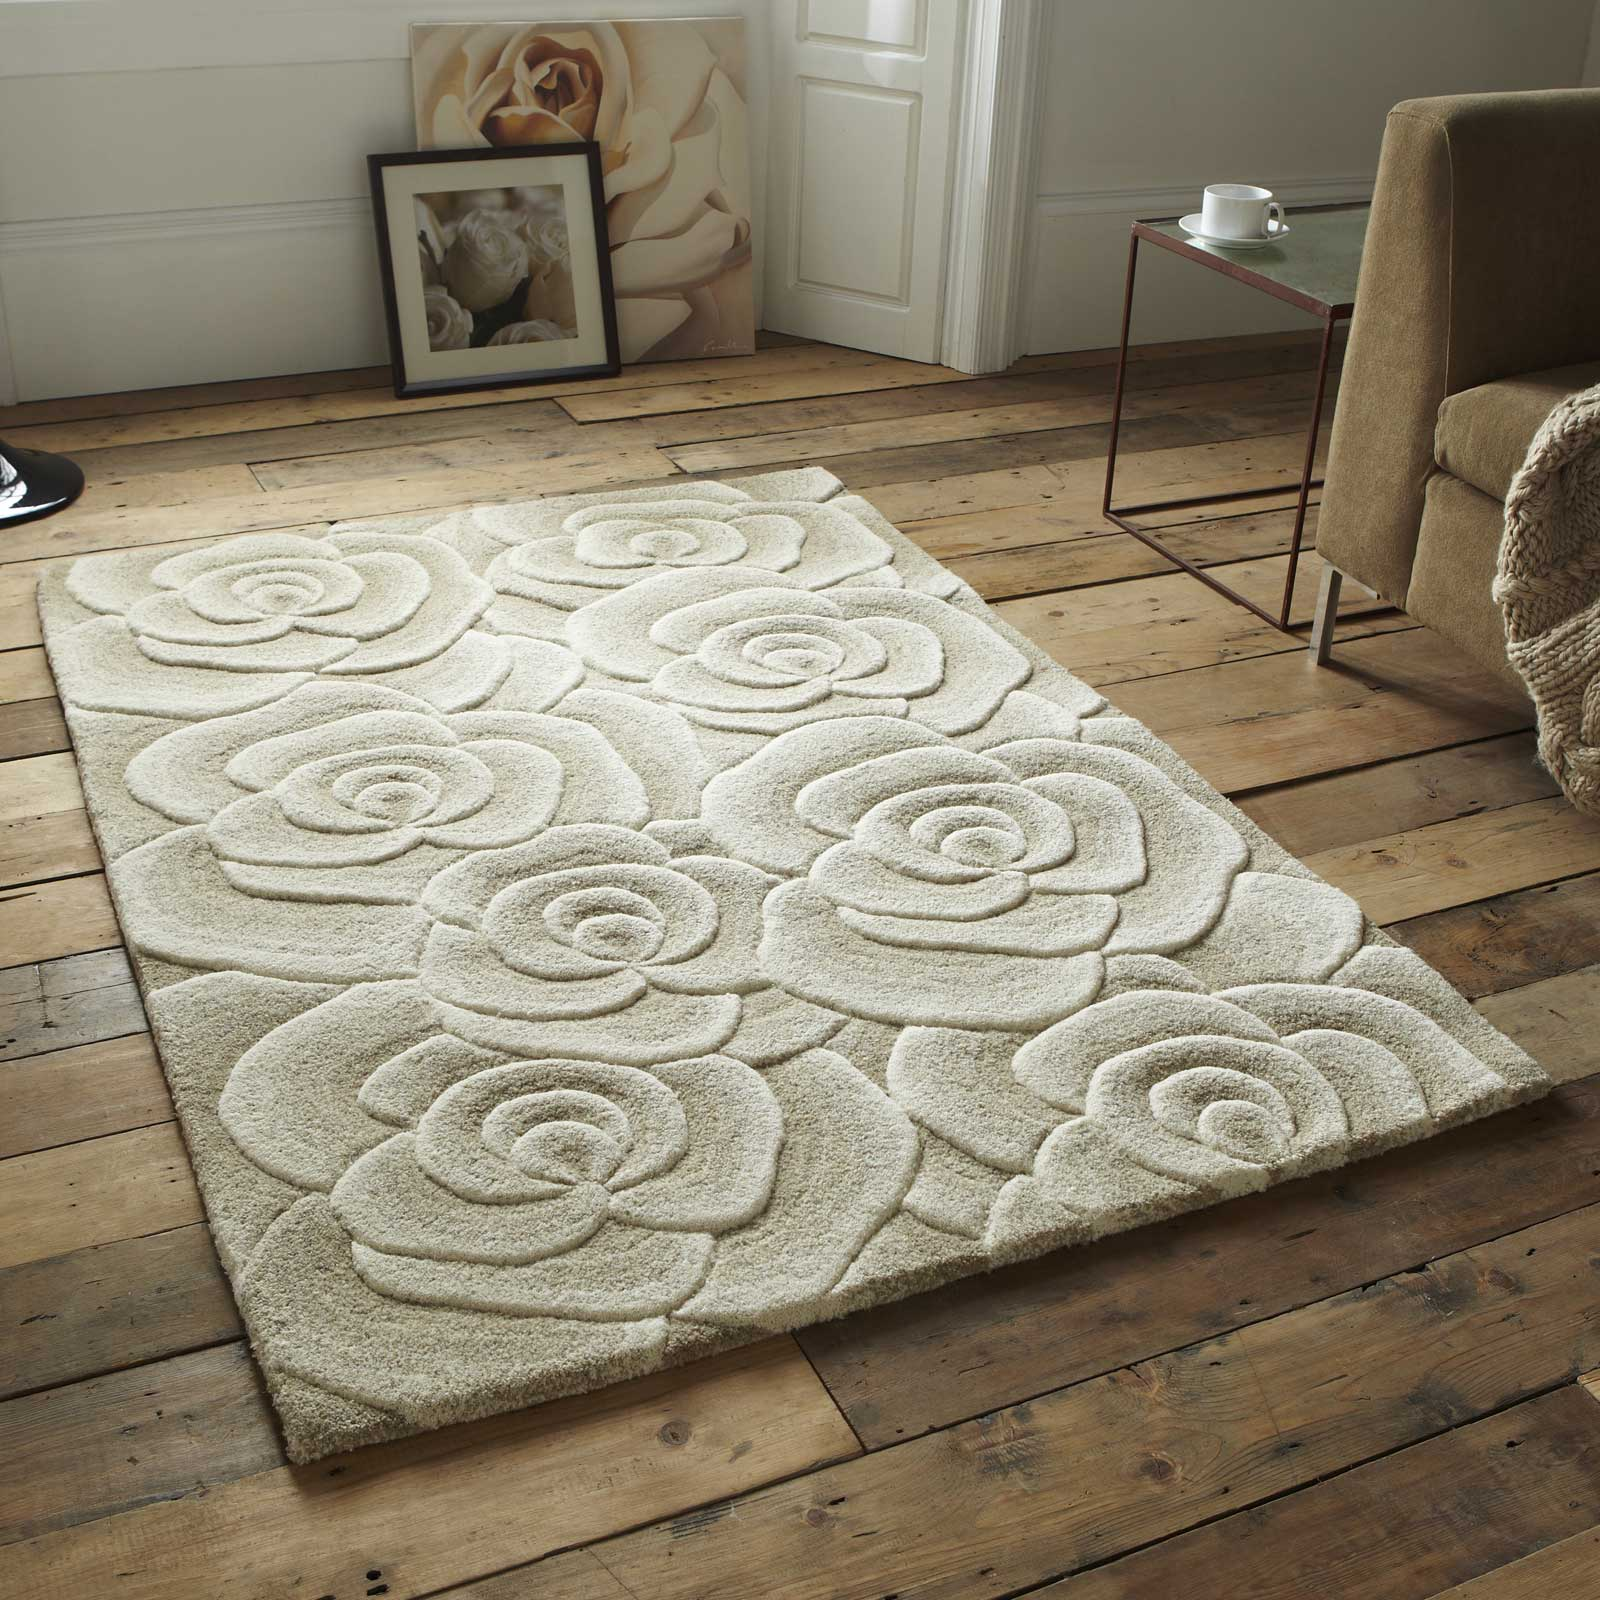 Valentine rugs wool rugs buy online at the rug seller for Best place to buy rugs online